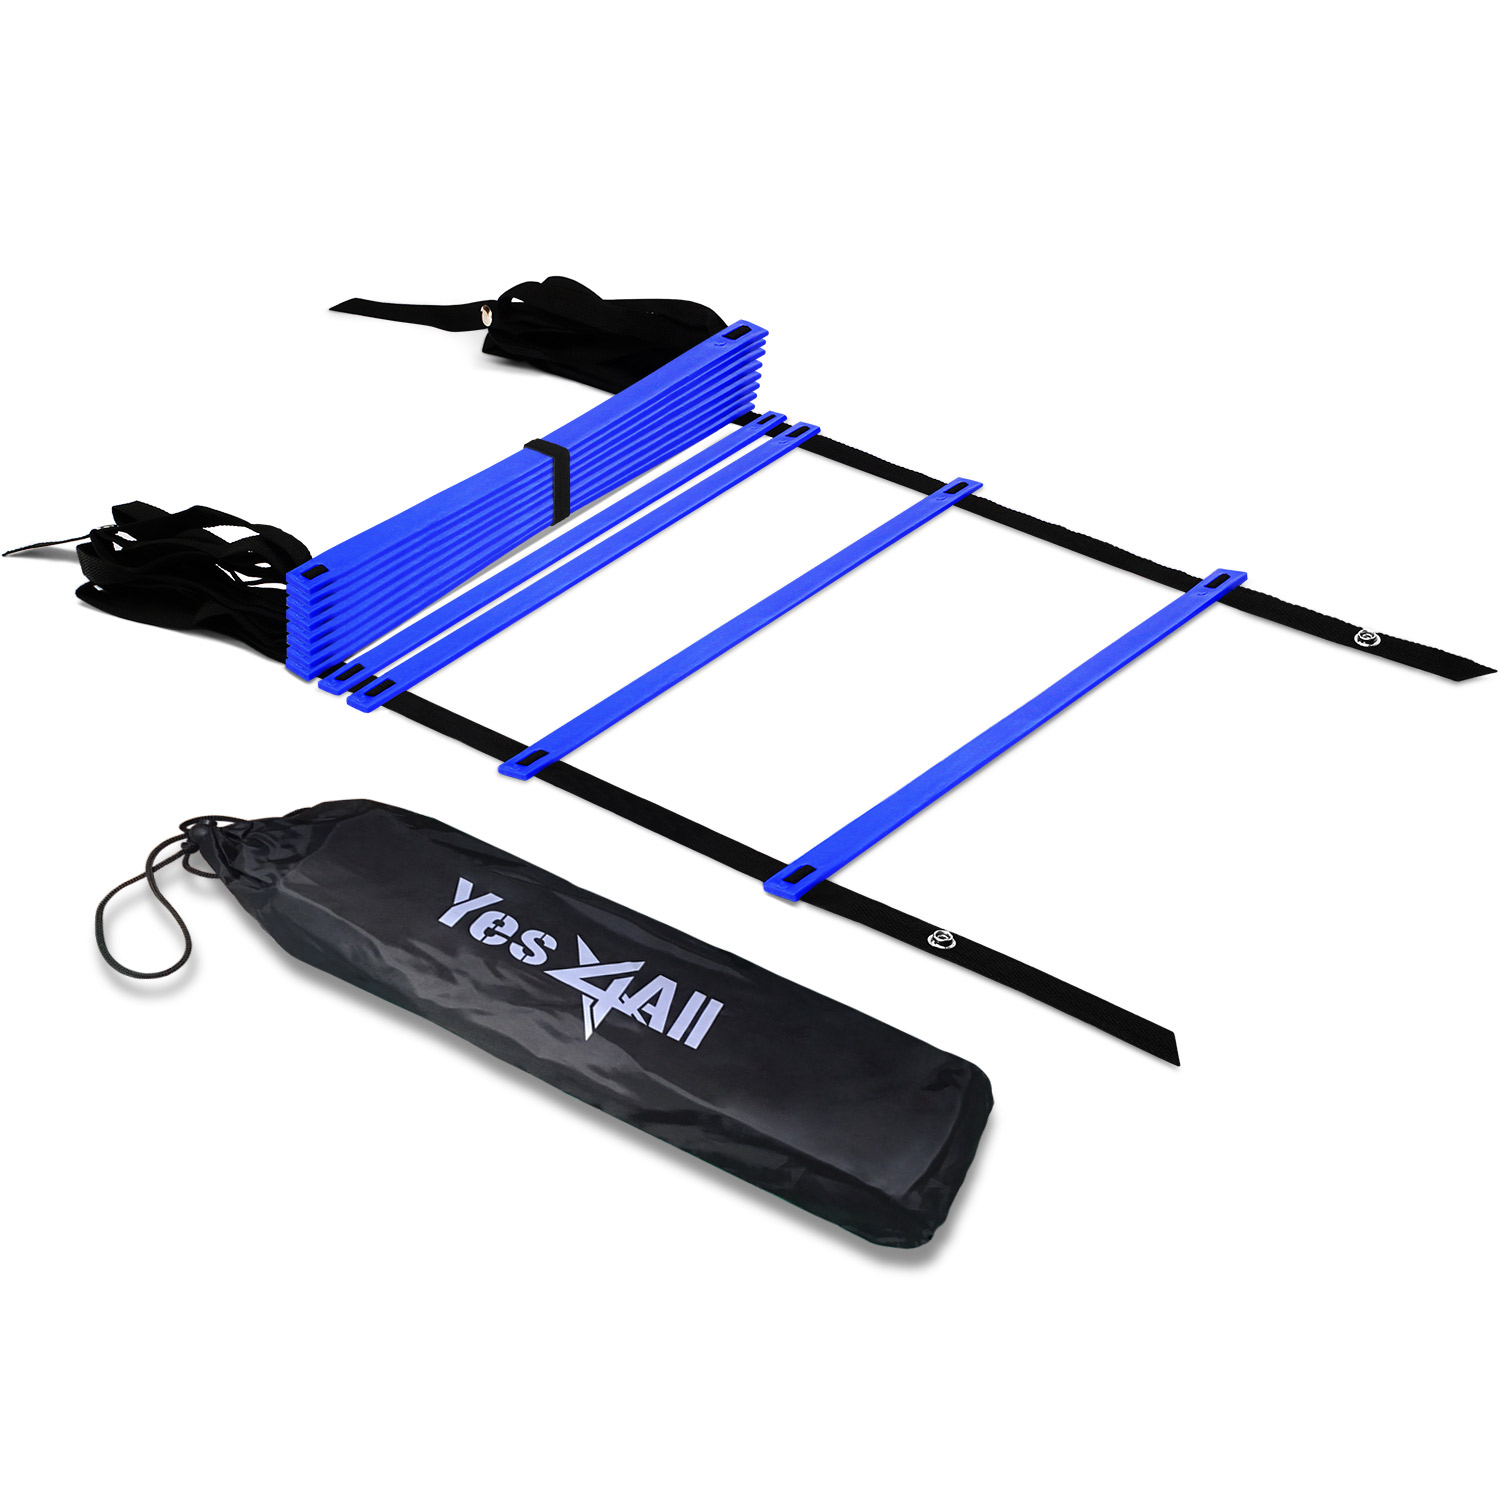 9 rungs training circuit Speed Training Agility Ladder with carry bag